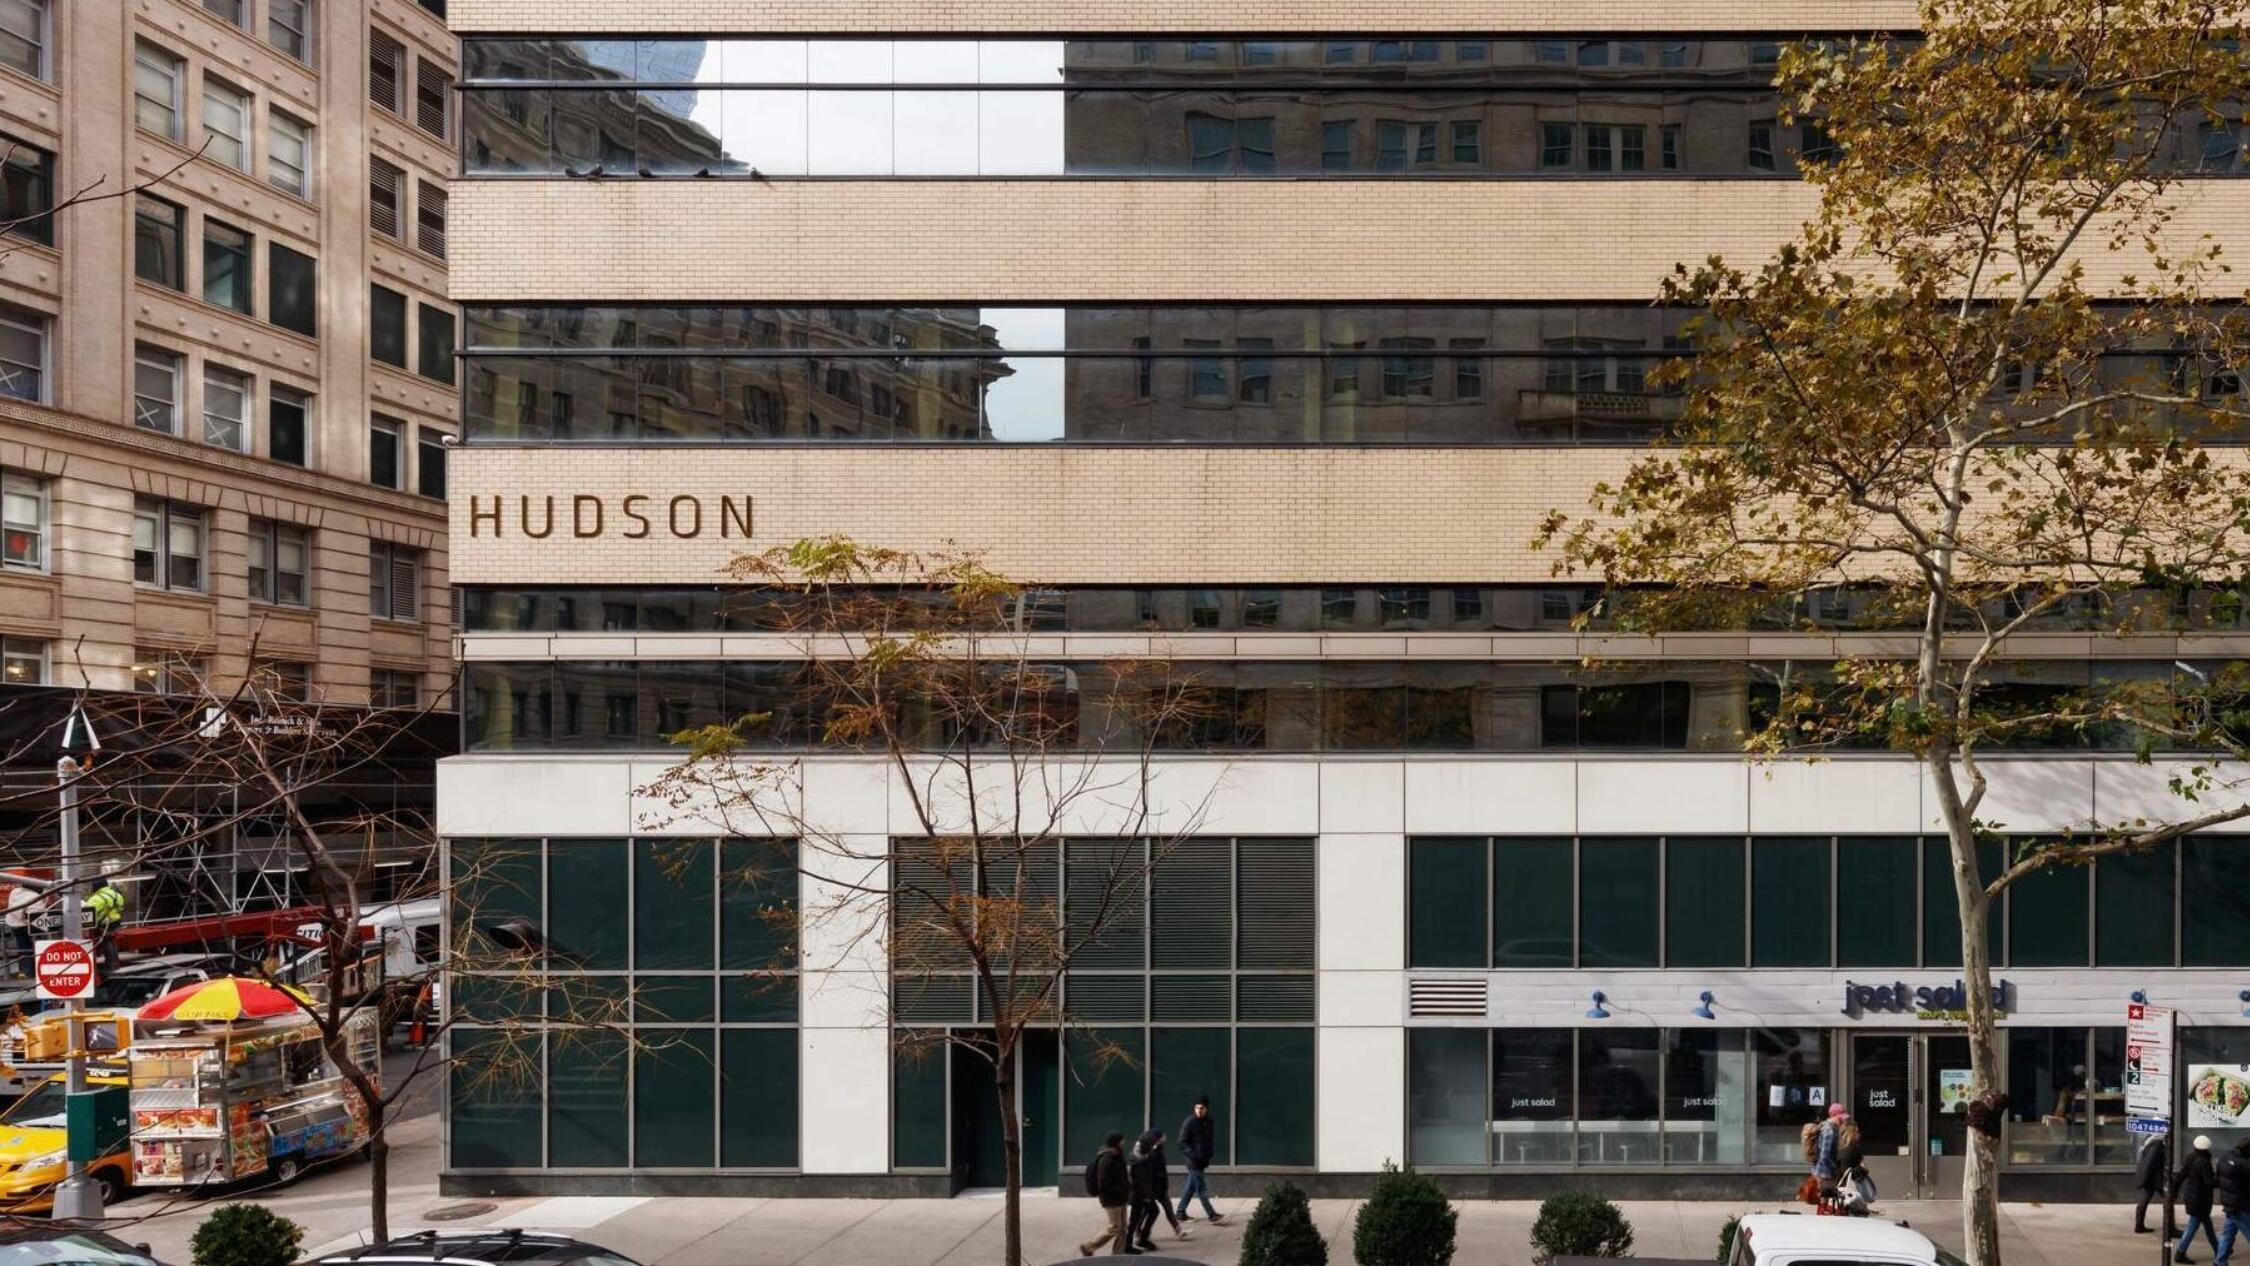 325 Hudson building facade with cars parked on street and pedestrians on sidewalk